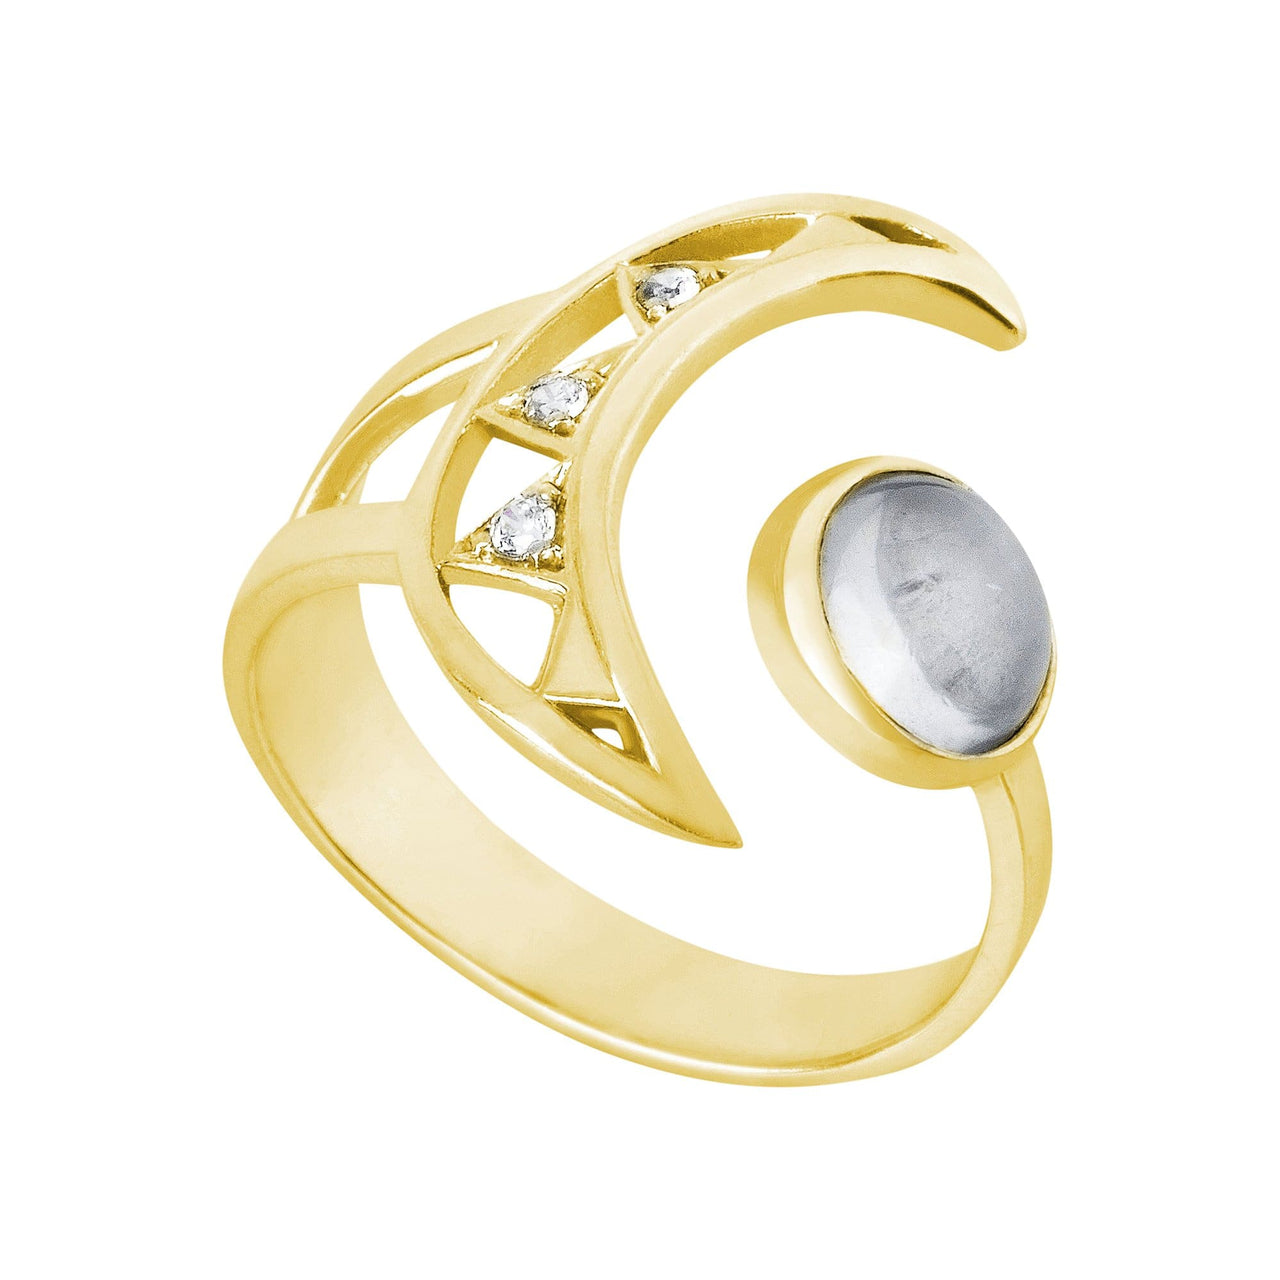 Mel Bandeira Rings Crescent Moon Gold Plated Sterling Silver Ring